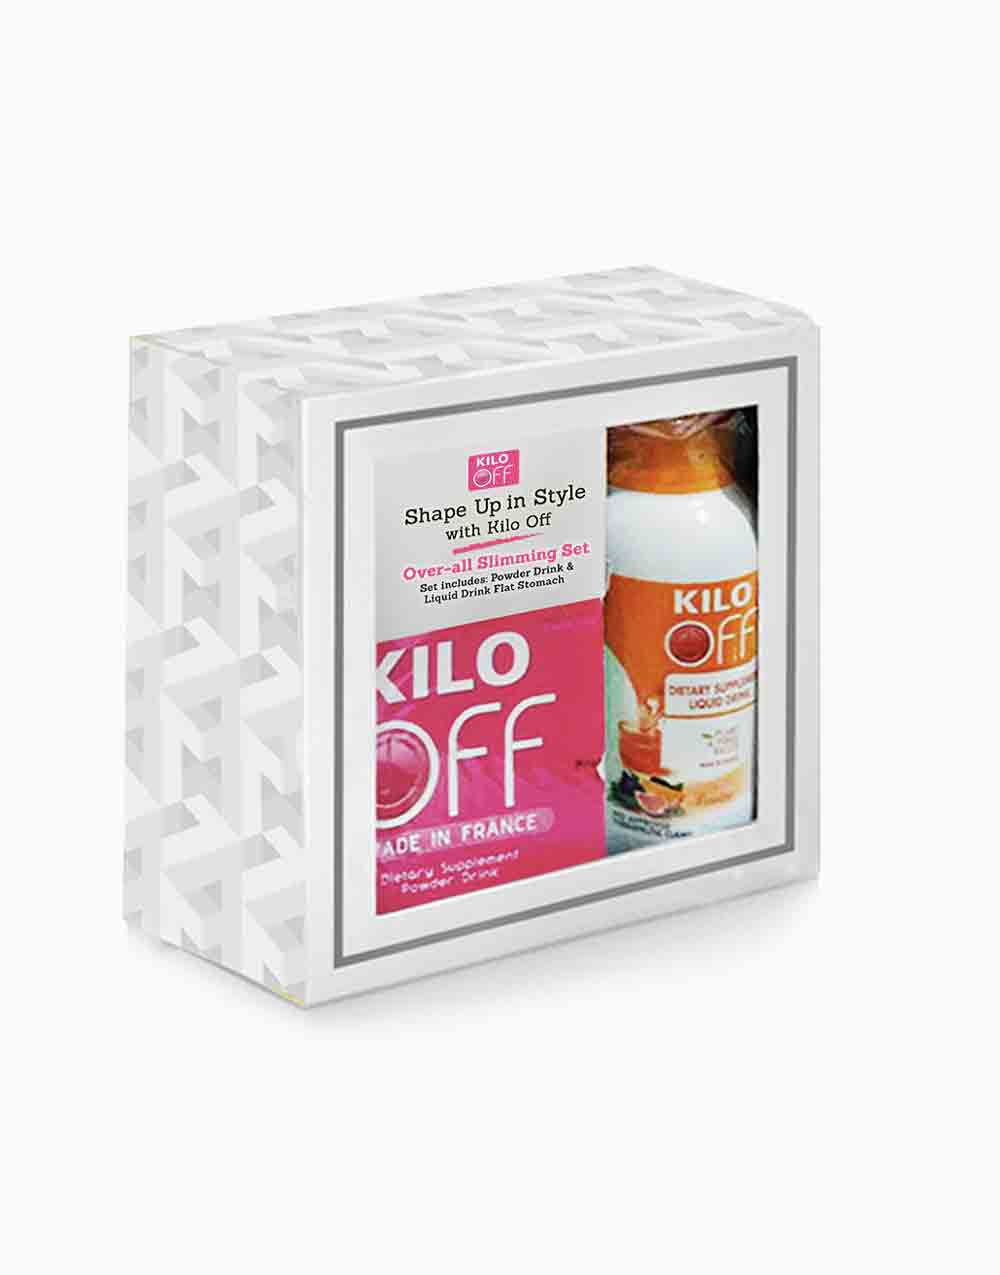 Over-All Slimming Set by Kilo Off